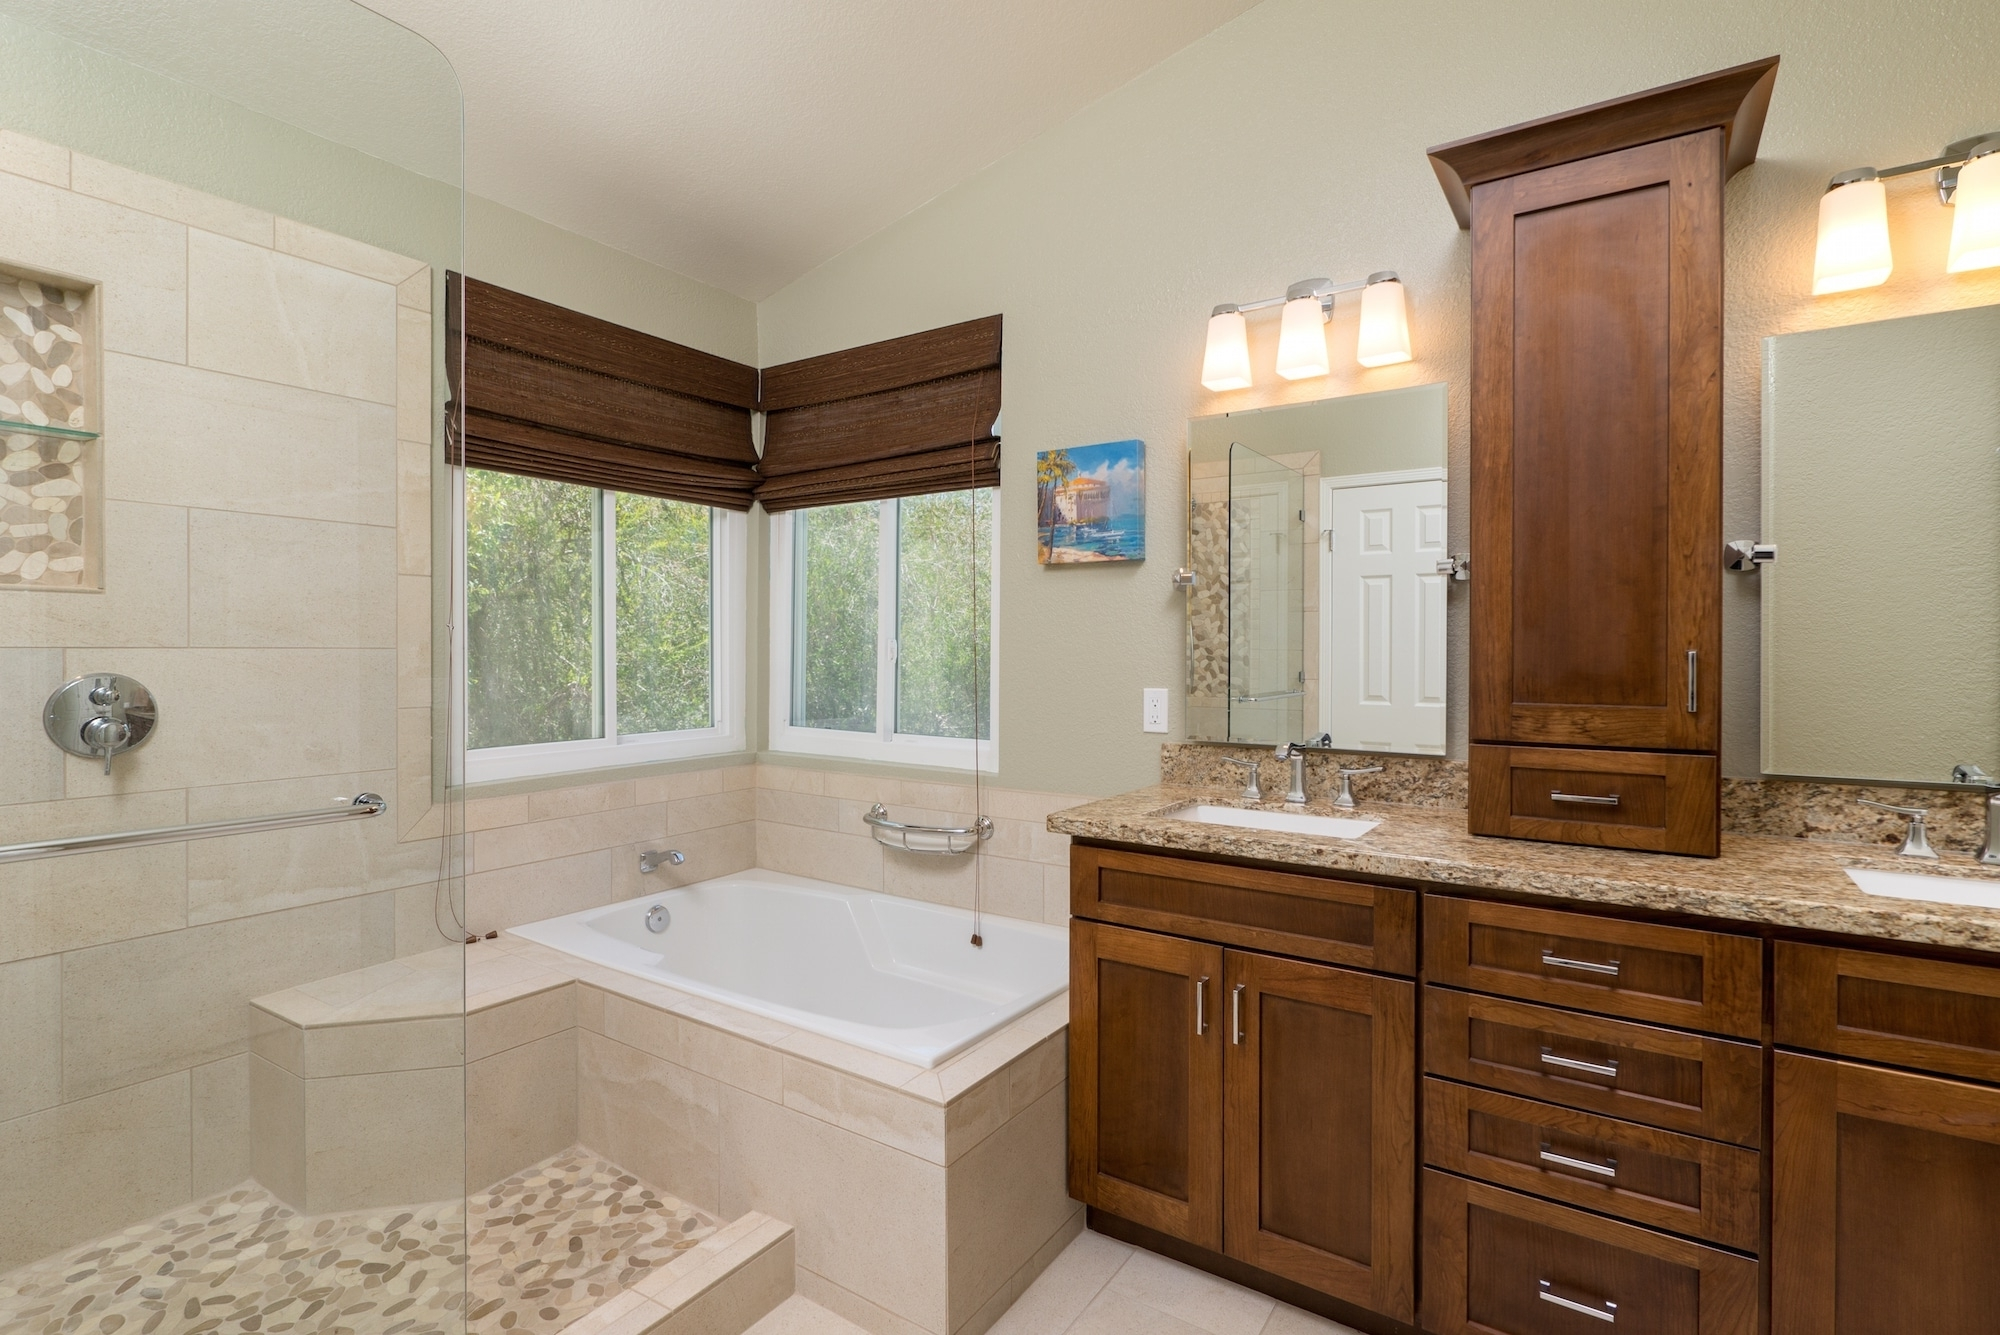 Bathroom Remodeling – Planning And Hiring | Angie's List Intended For Cheap Ways To Improve Your Bathroom (Image 10 of 33)